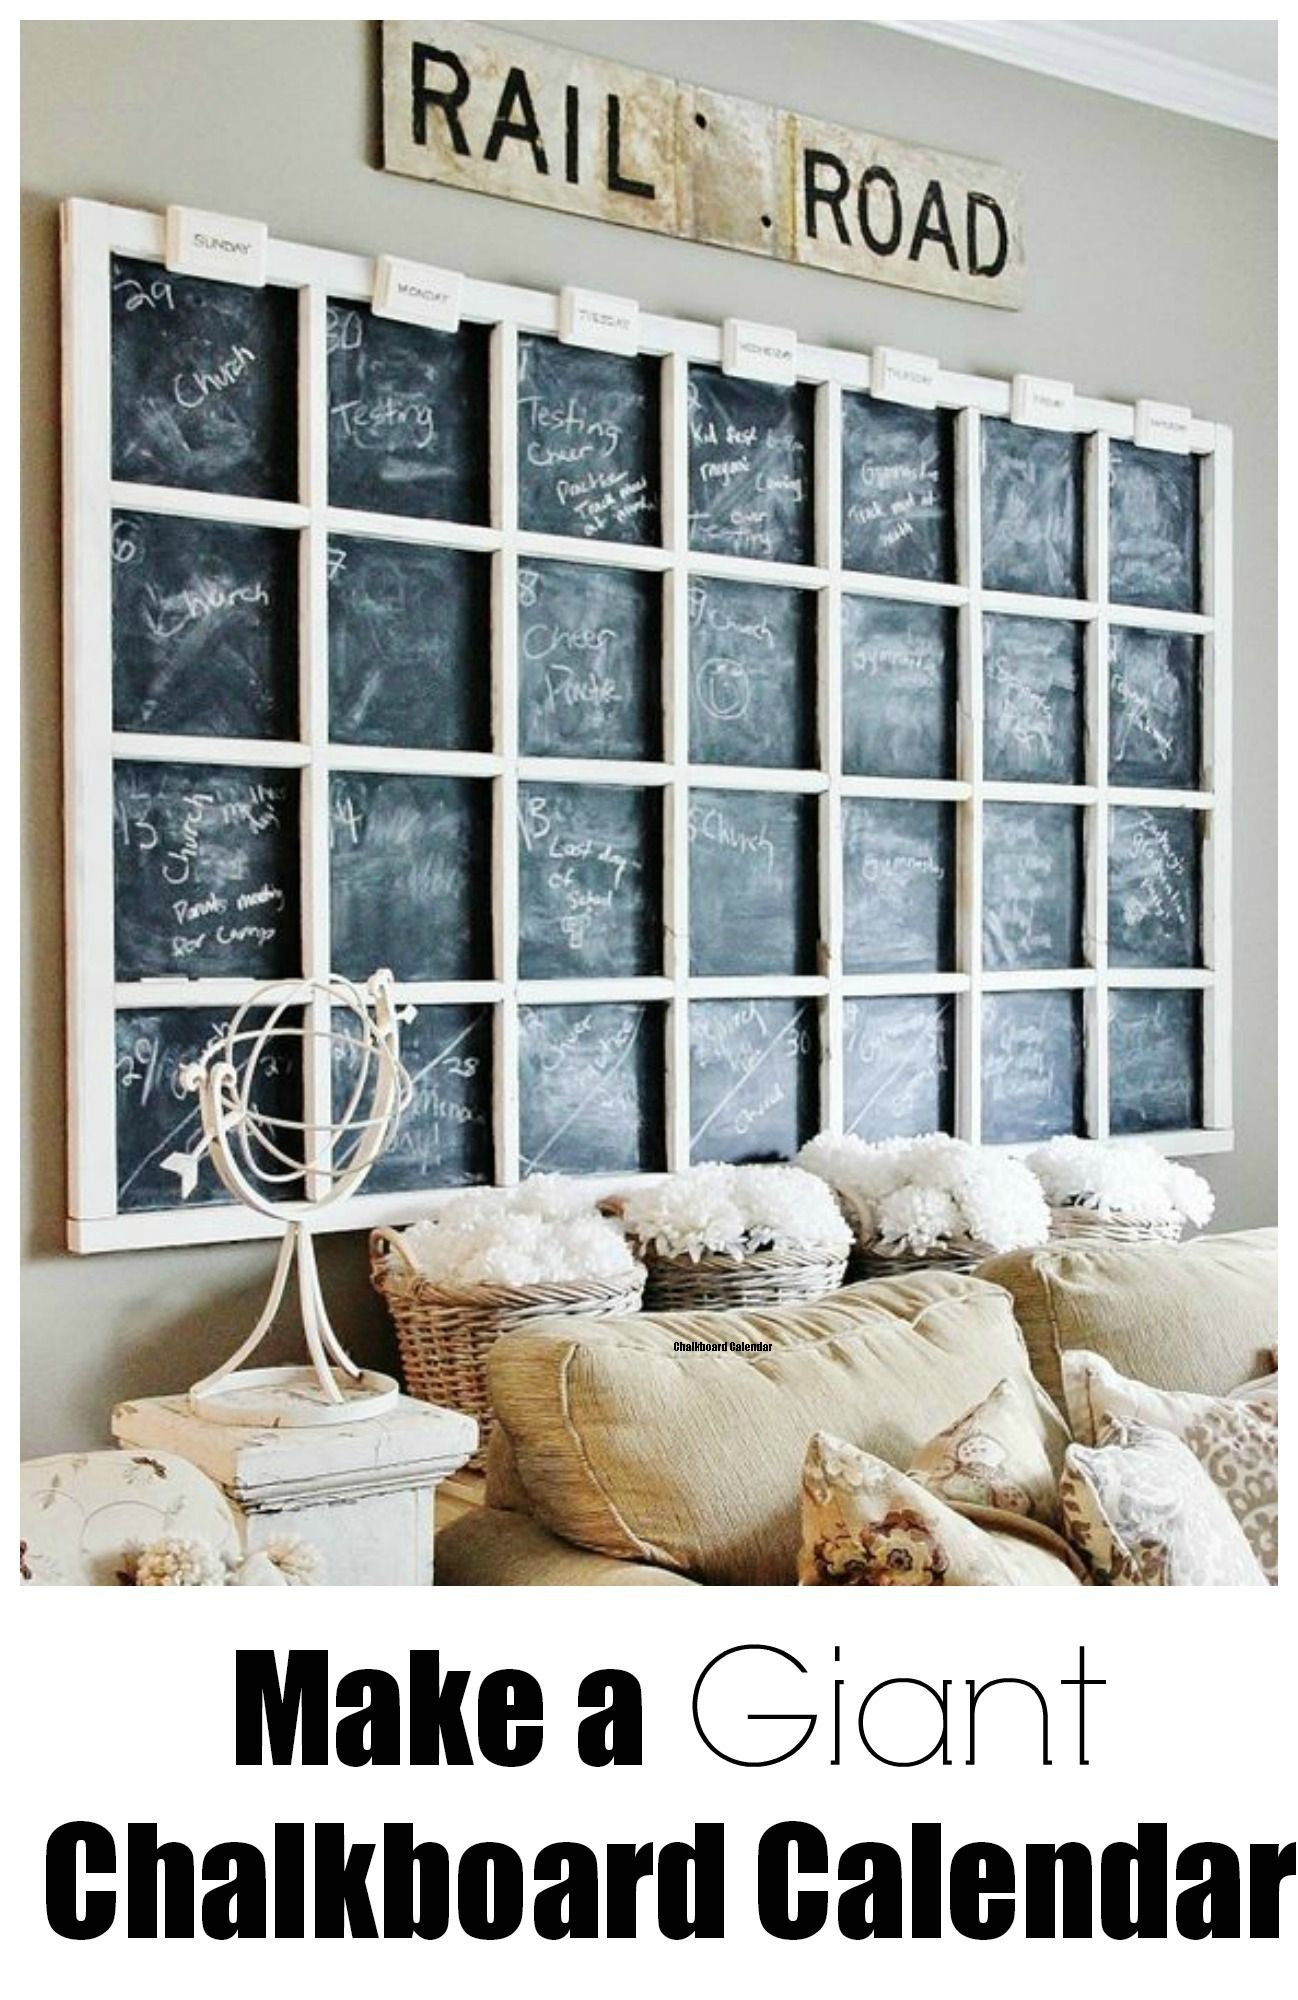 How to Make a Giant Chalkboard Wall Calendar www.thistlewoodfarms.com #Chalkboard  #calendar  #organization